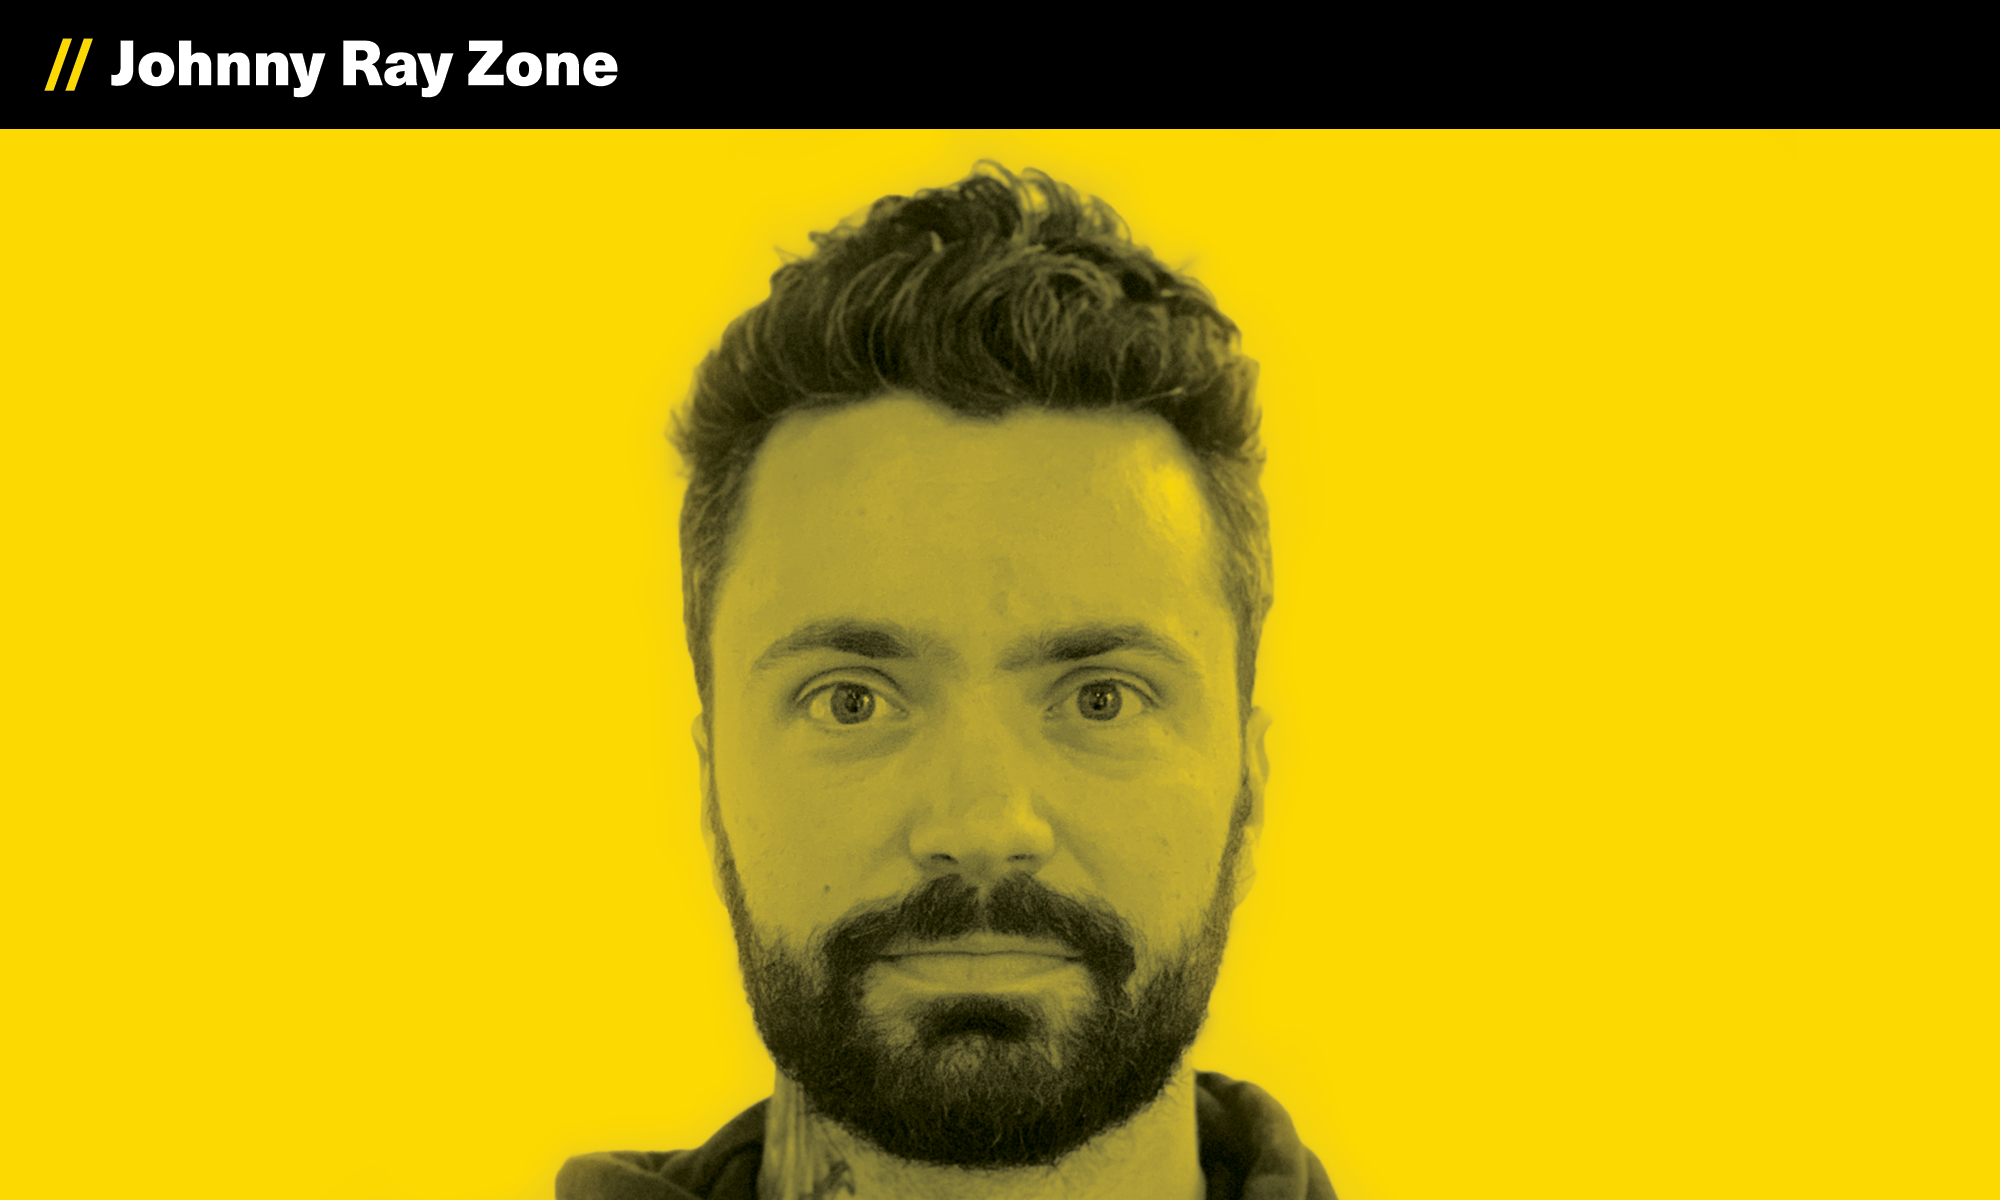 Johnny Ray Zone, Howlin Rays, The Founder Hour, Podcast